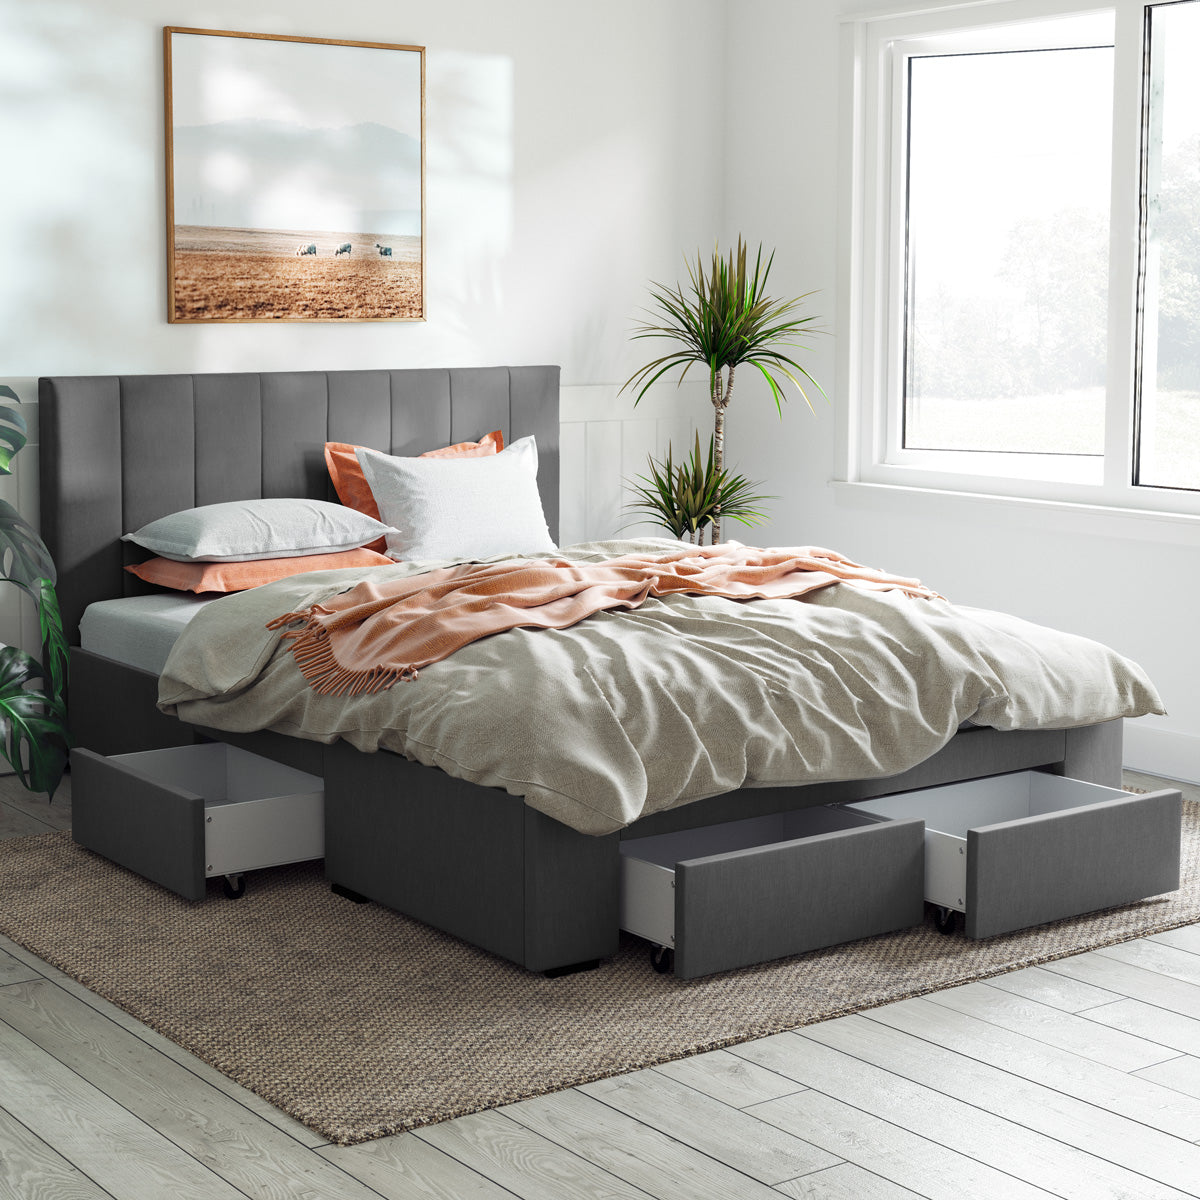 Ormond Bed Frame with Four Storage Drawers (Charcoal Fabric)